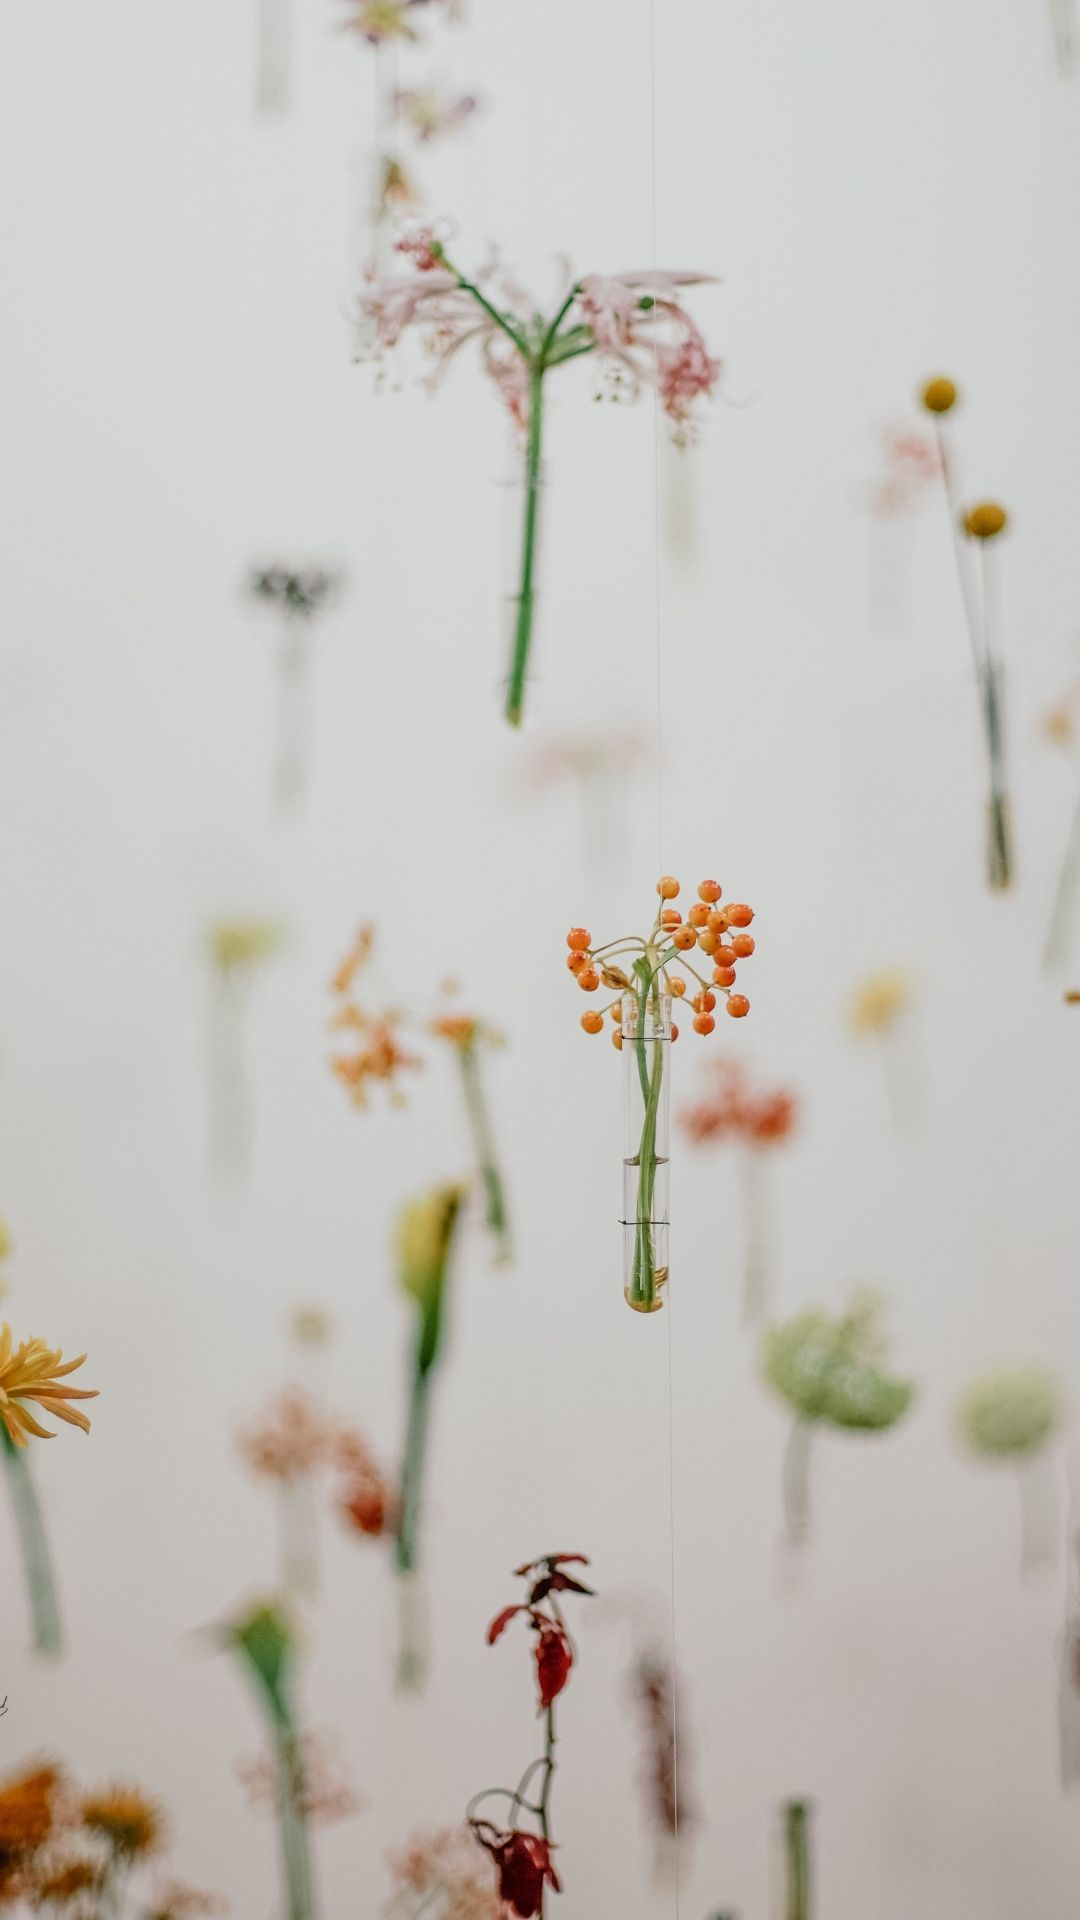 Minimalist Spring Background For Android Iphone Wallpaper Tumblr Aesthetic Floral Wallpaper Iphone Spring Wallpaper